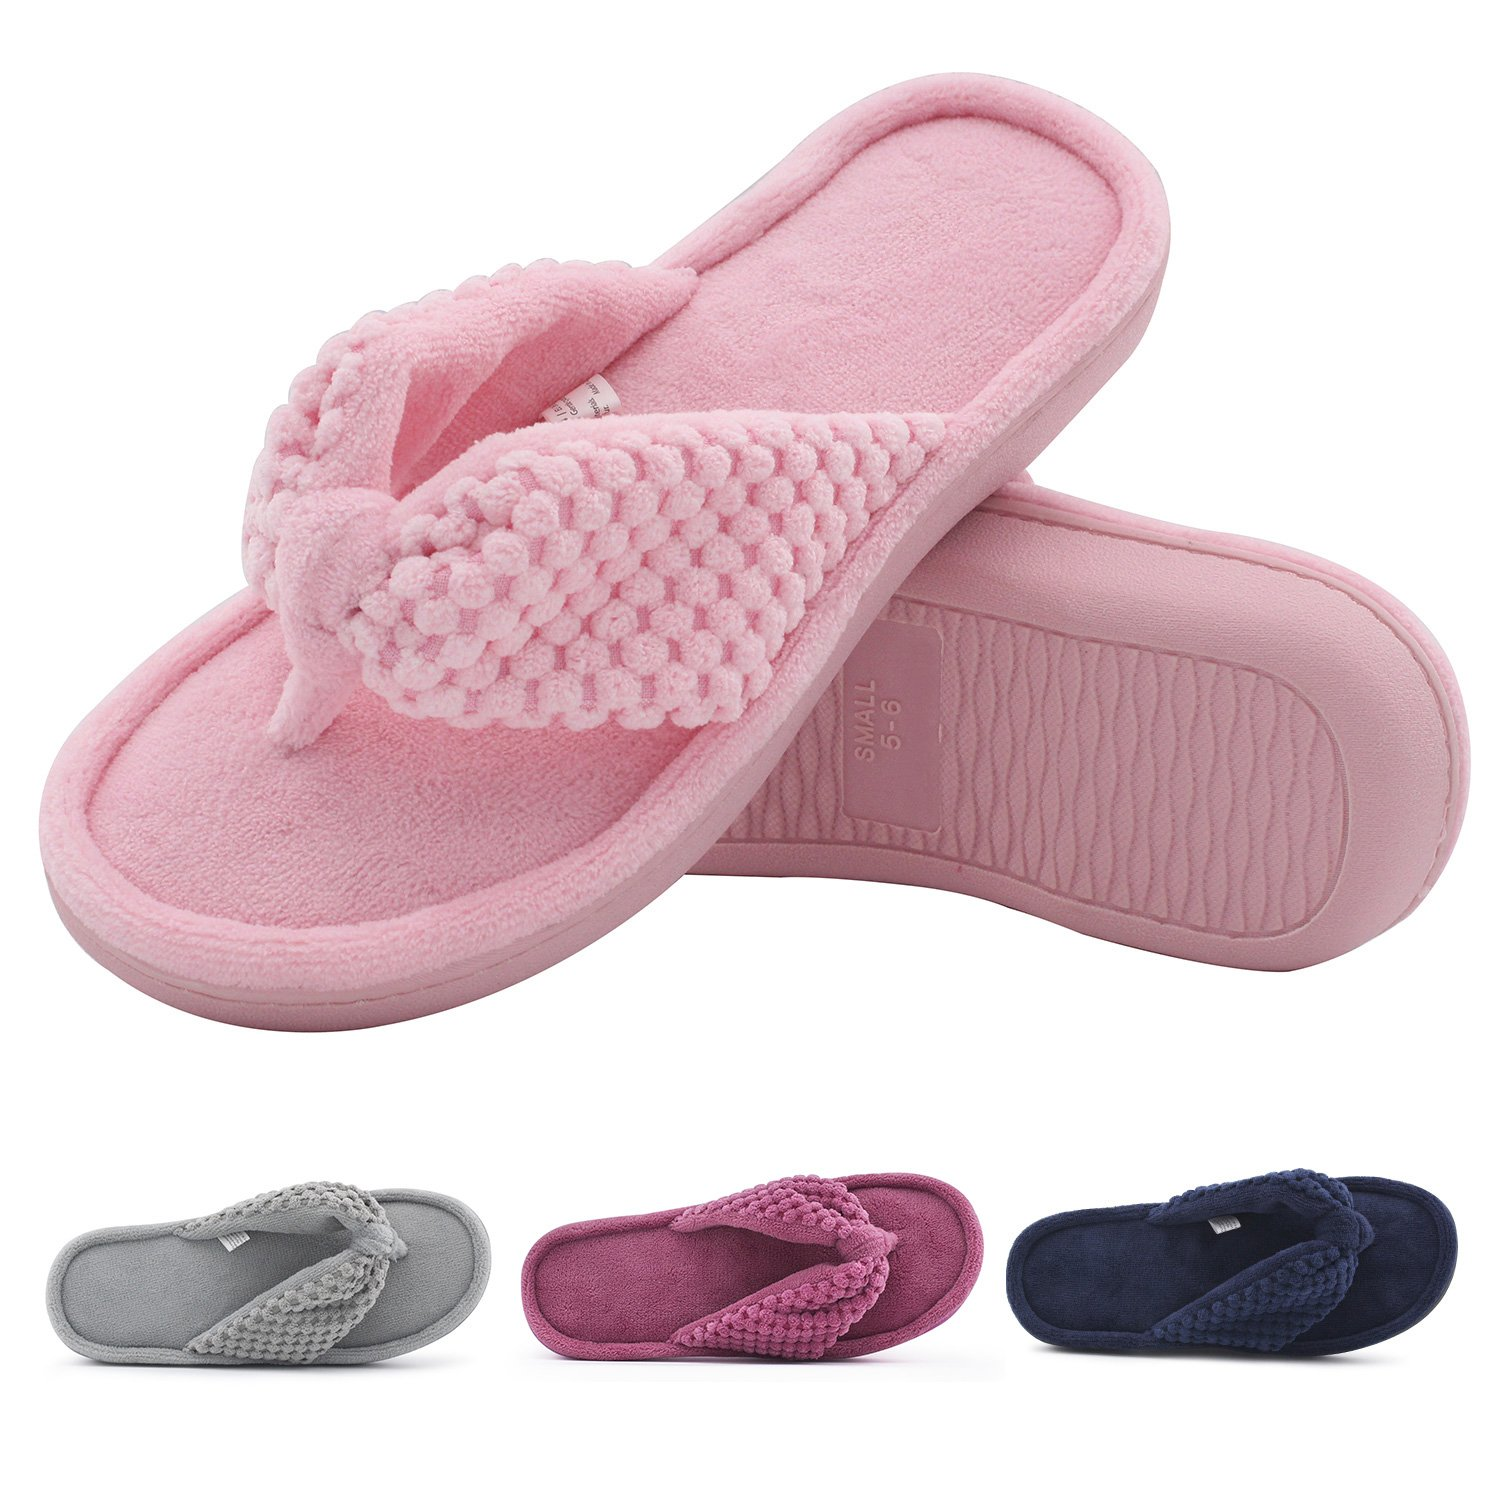 Women's Cozy Memory Foam Plush Gridding Velvet Lining Spa Thong Flip Flops Clog Style House Indoor Slippers (Small / 5-6 B(M) US, Pink)